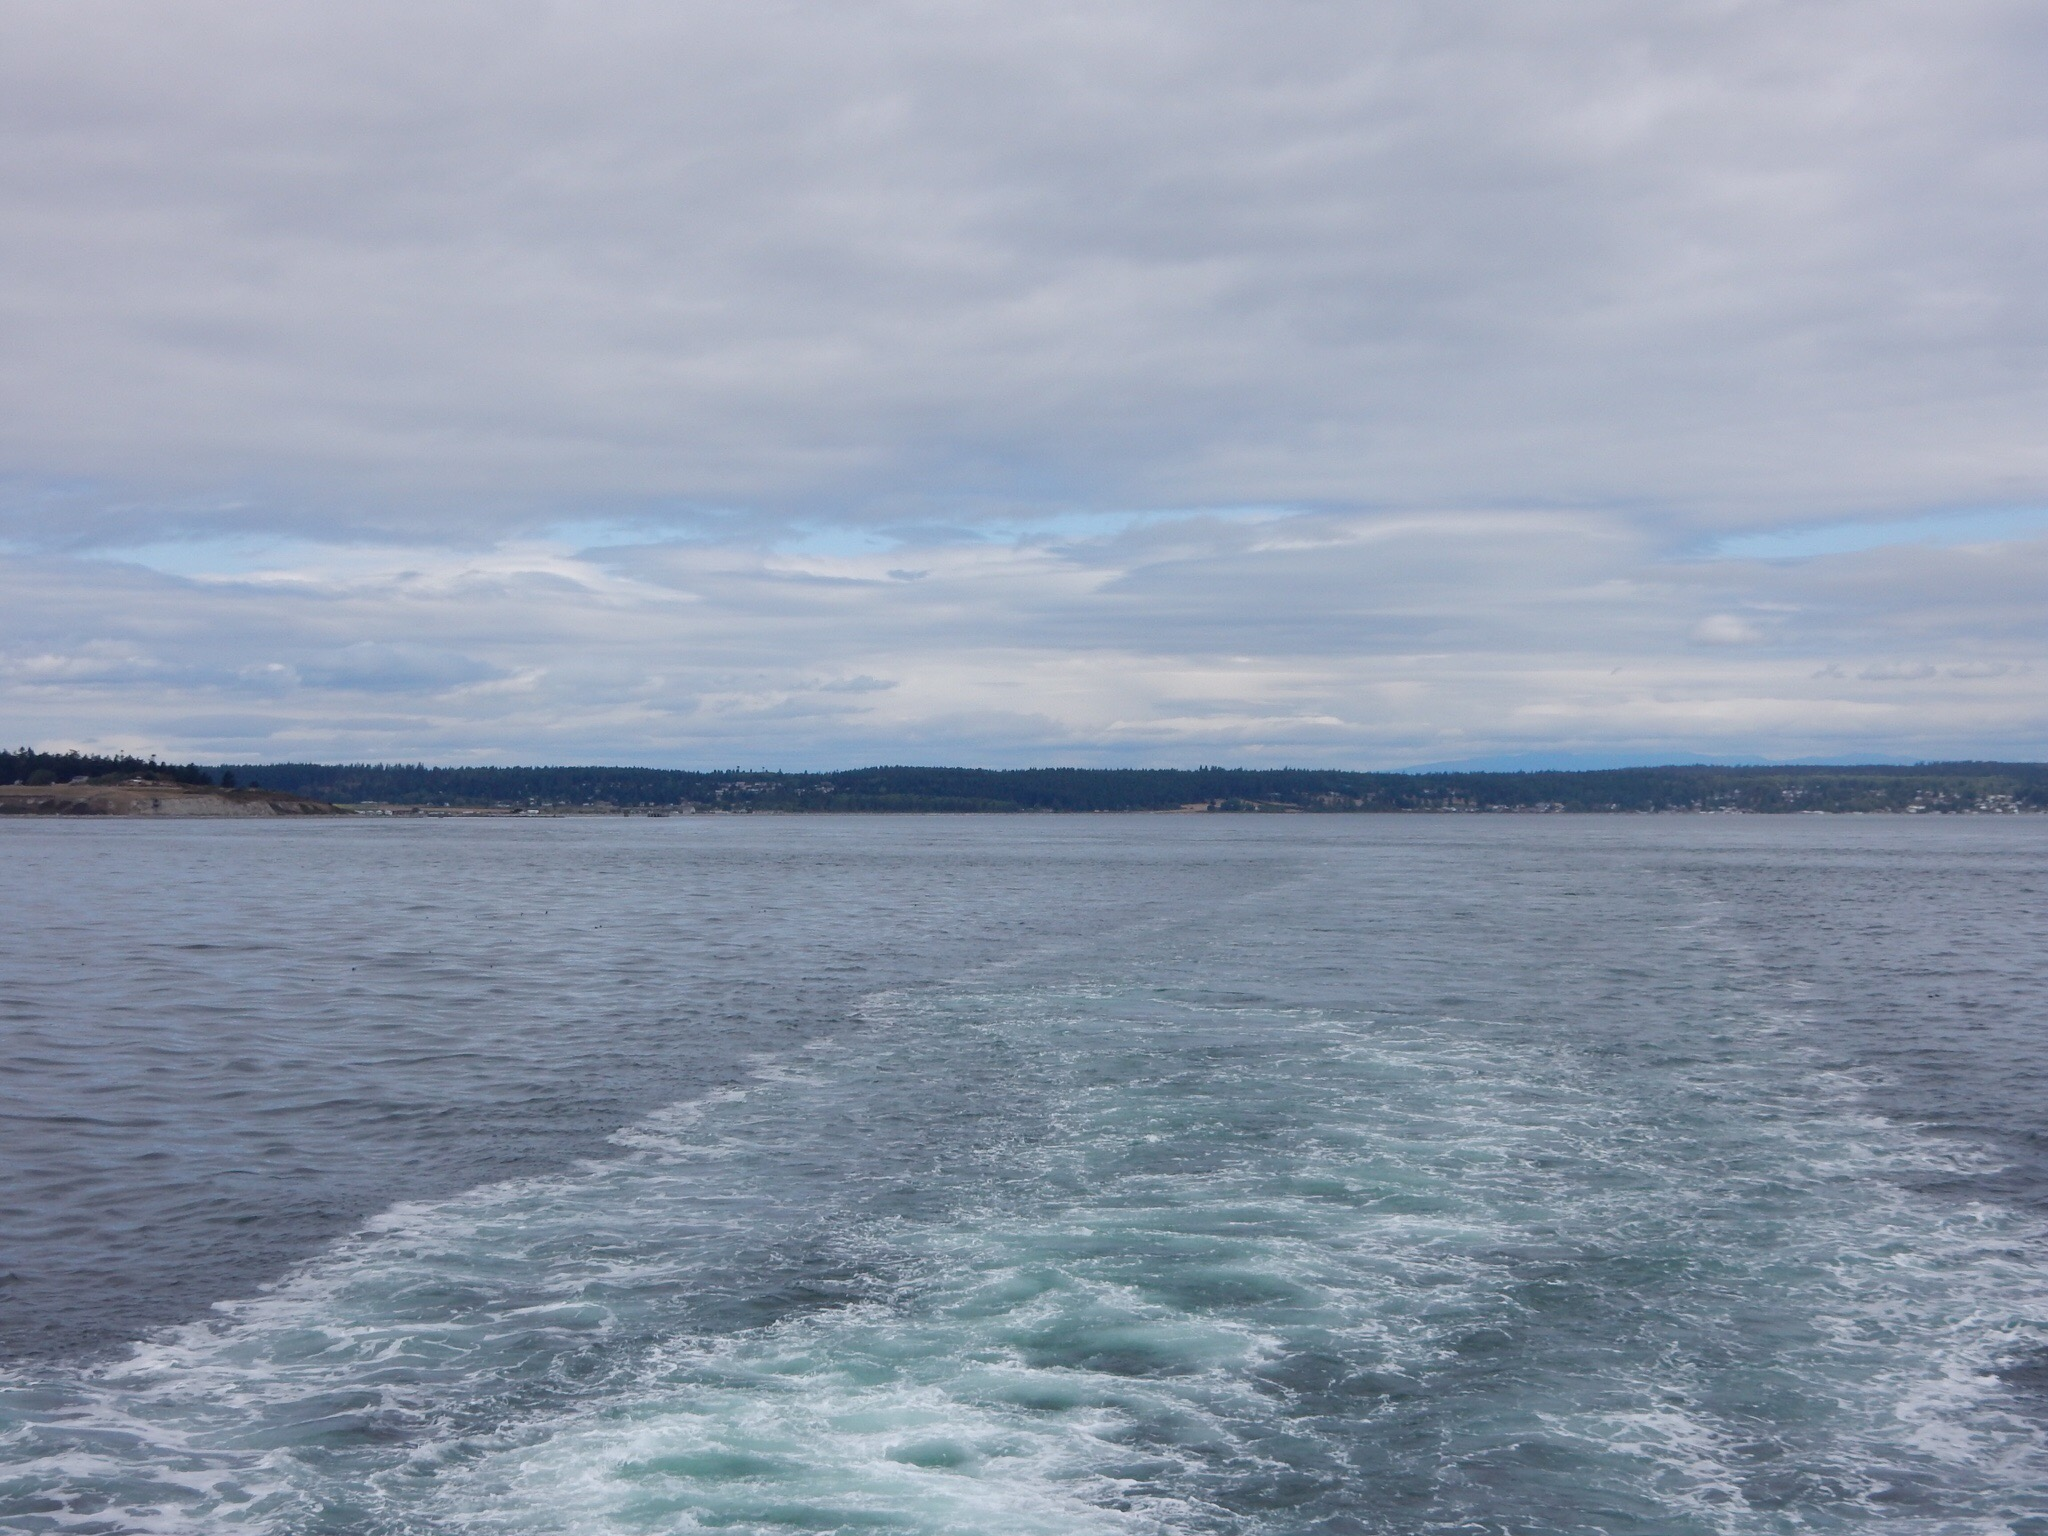 Crossing Puget Sound on the Coupeville/Port Townsend ferry.